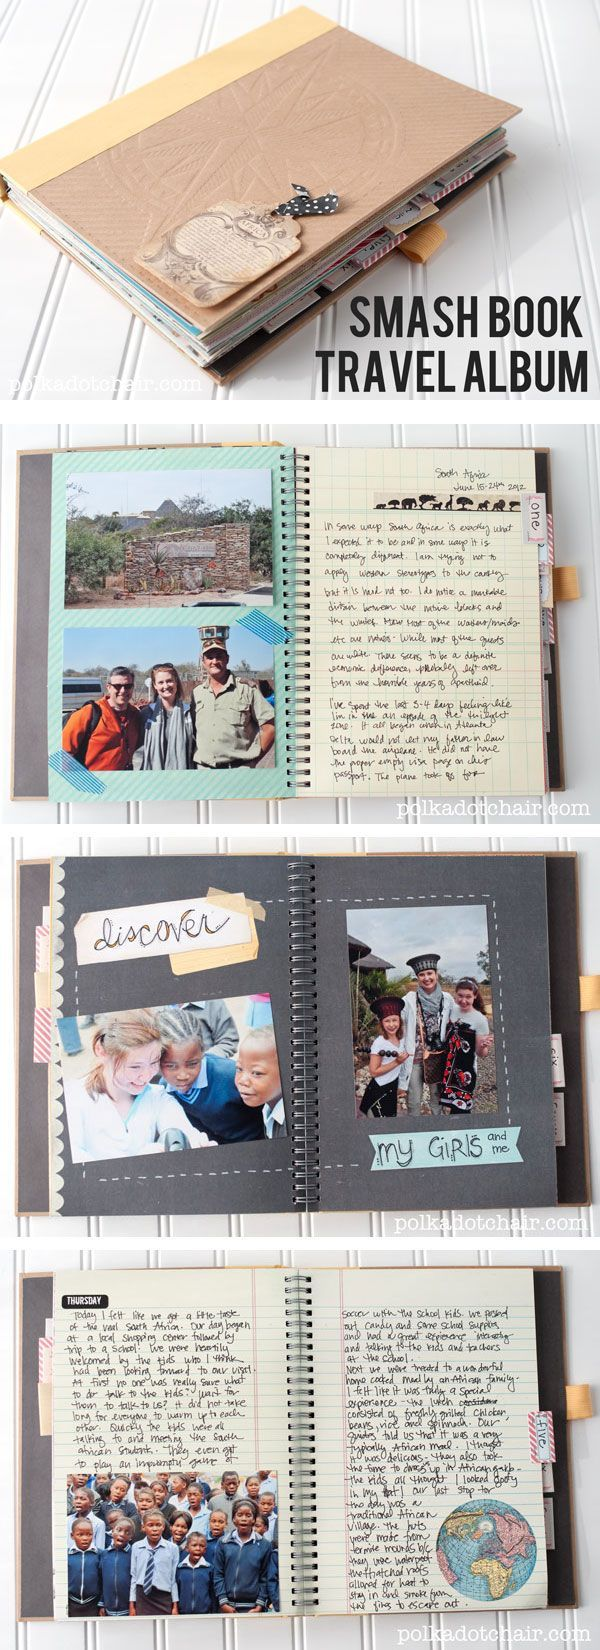 Ideas for using a Smash book to keep a travel journal and scrapbook of your vacation. Lots of fun page ideas!